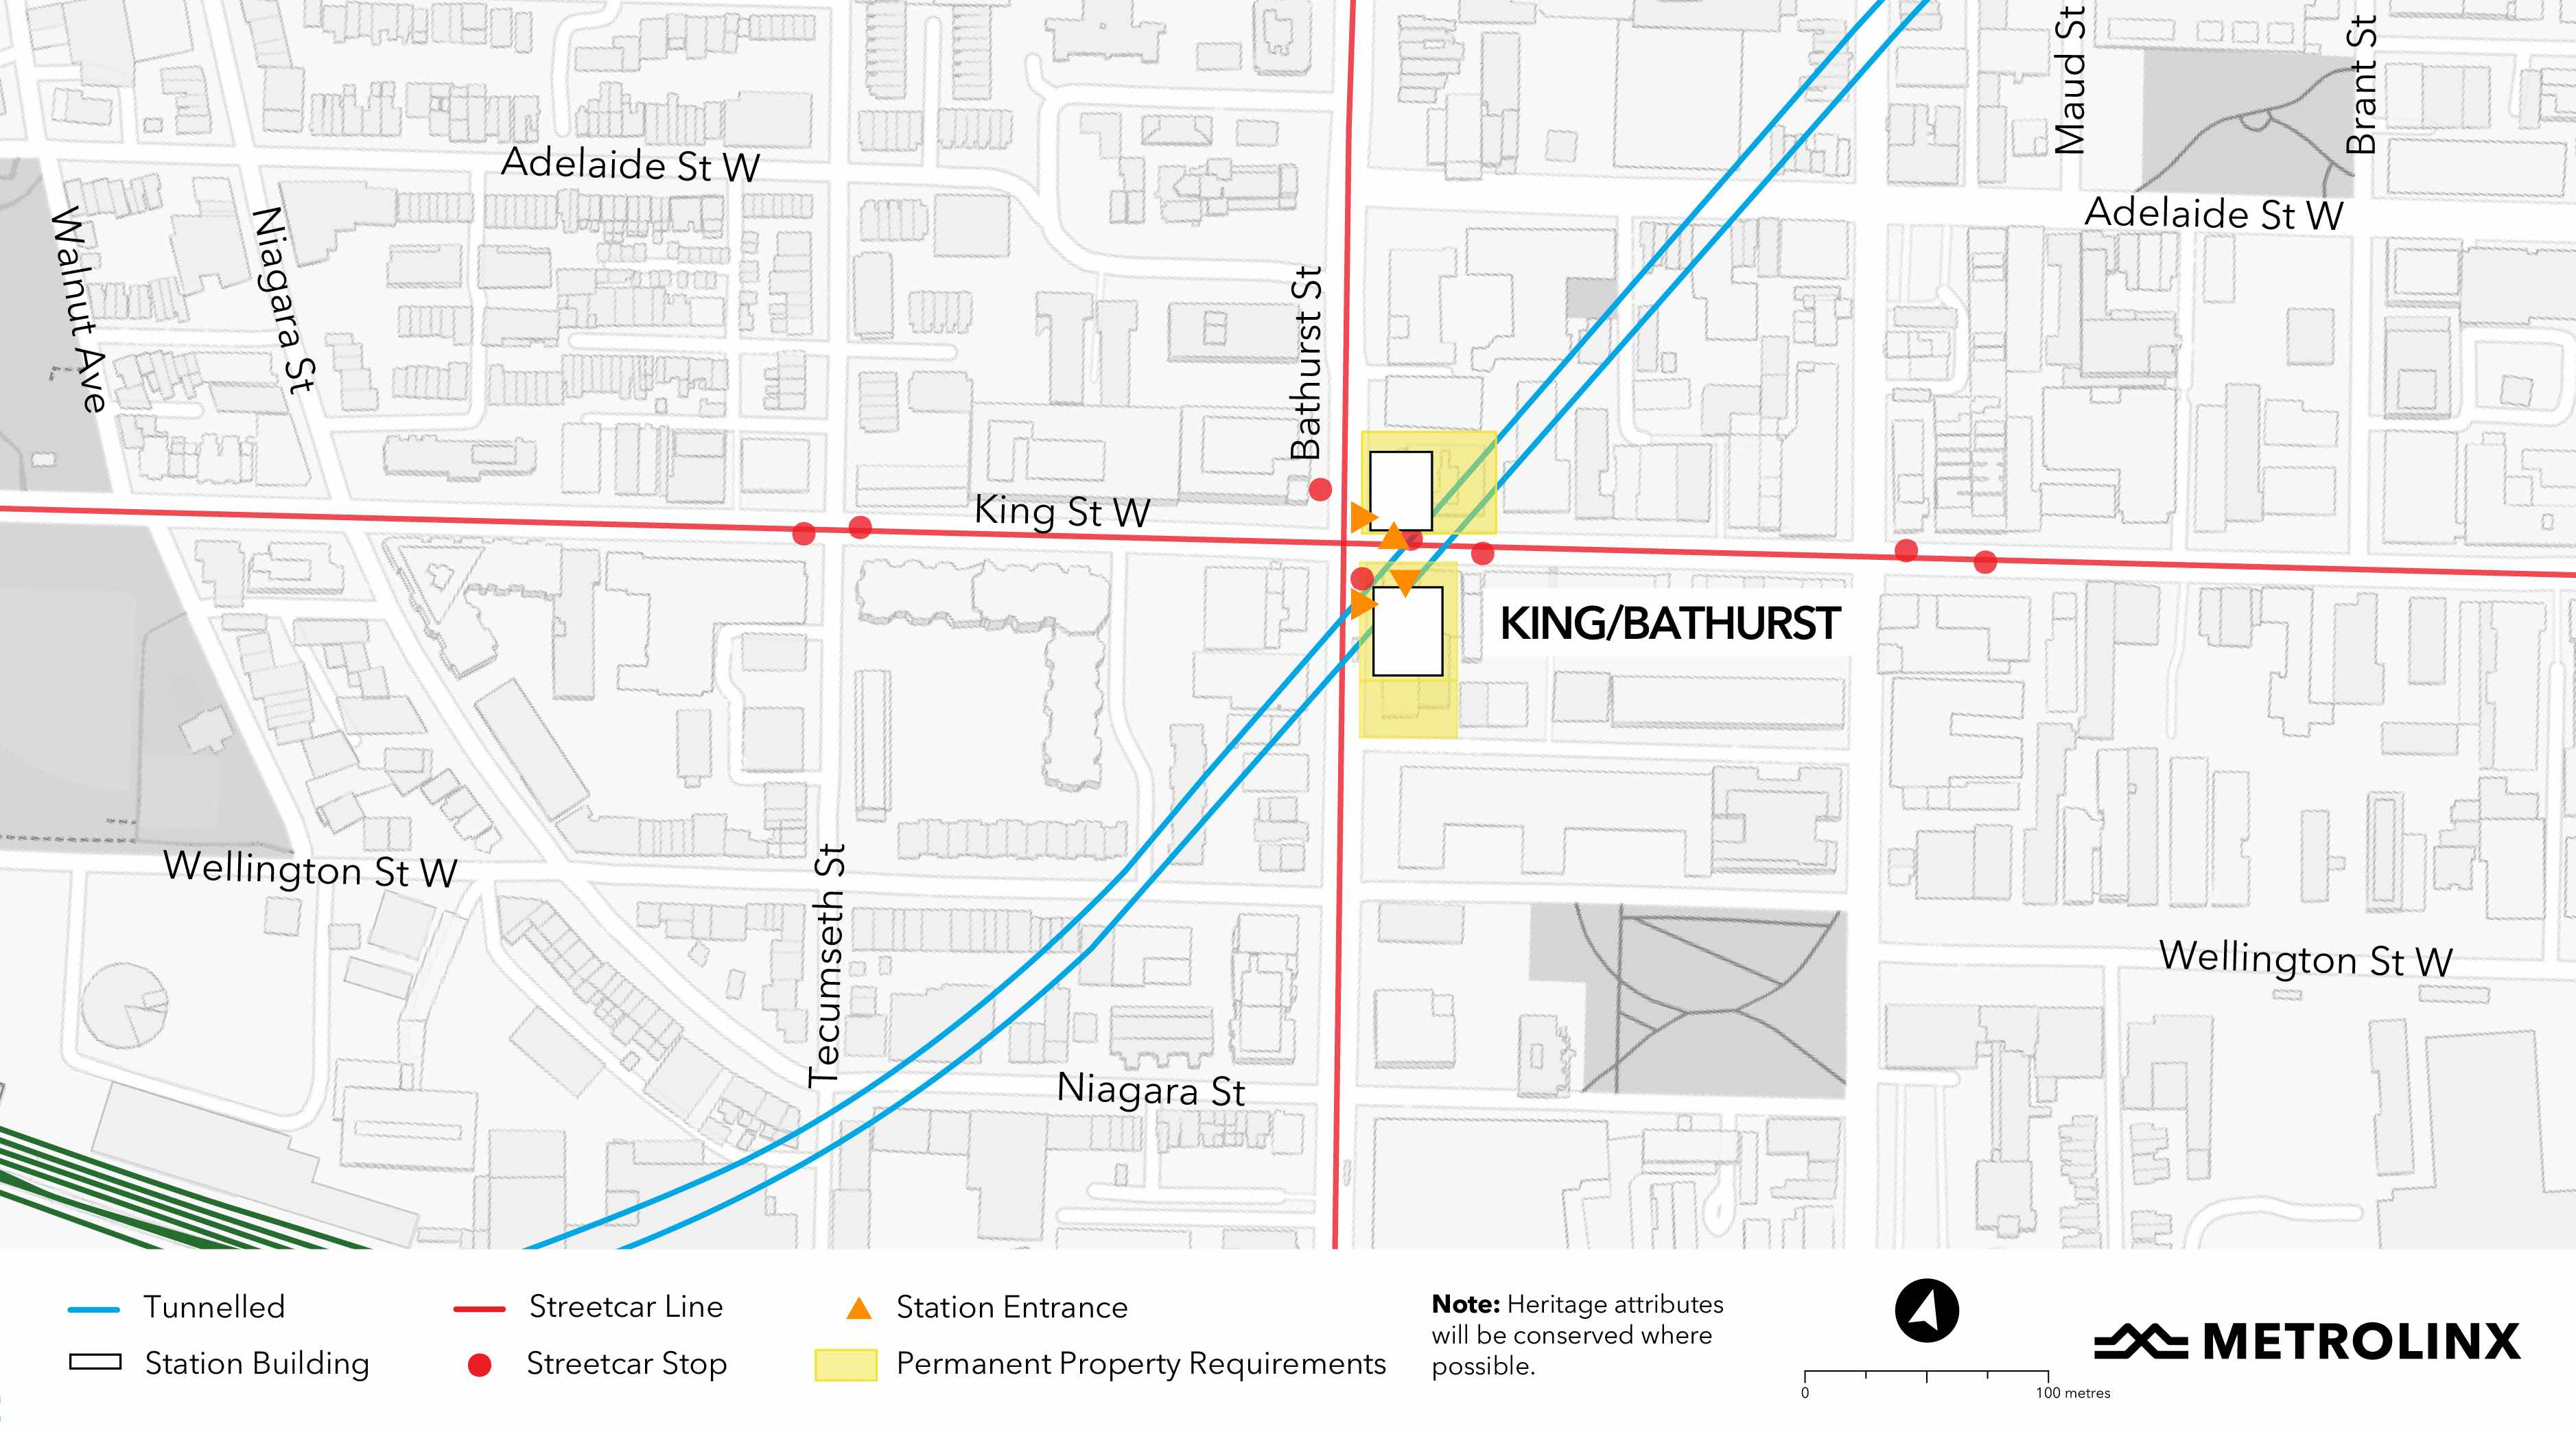 portion of the alignment containing King/Bathurst